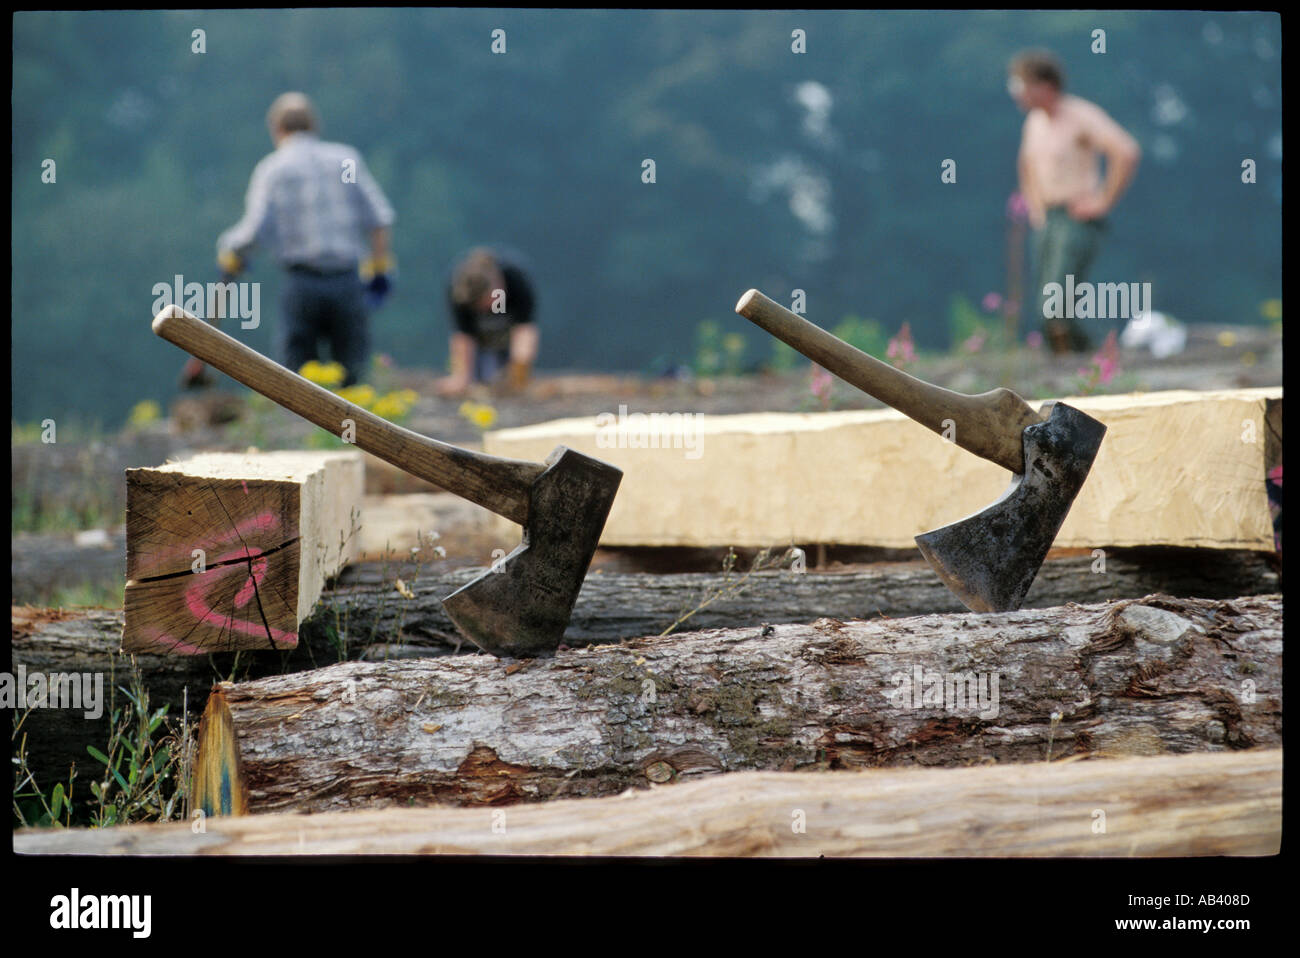 A pair of Old English logging axes used to cut and shape wood in the process of building wooden framed buildings Stock Photo